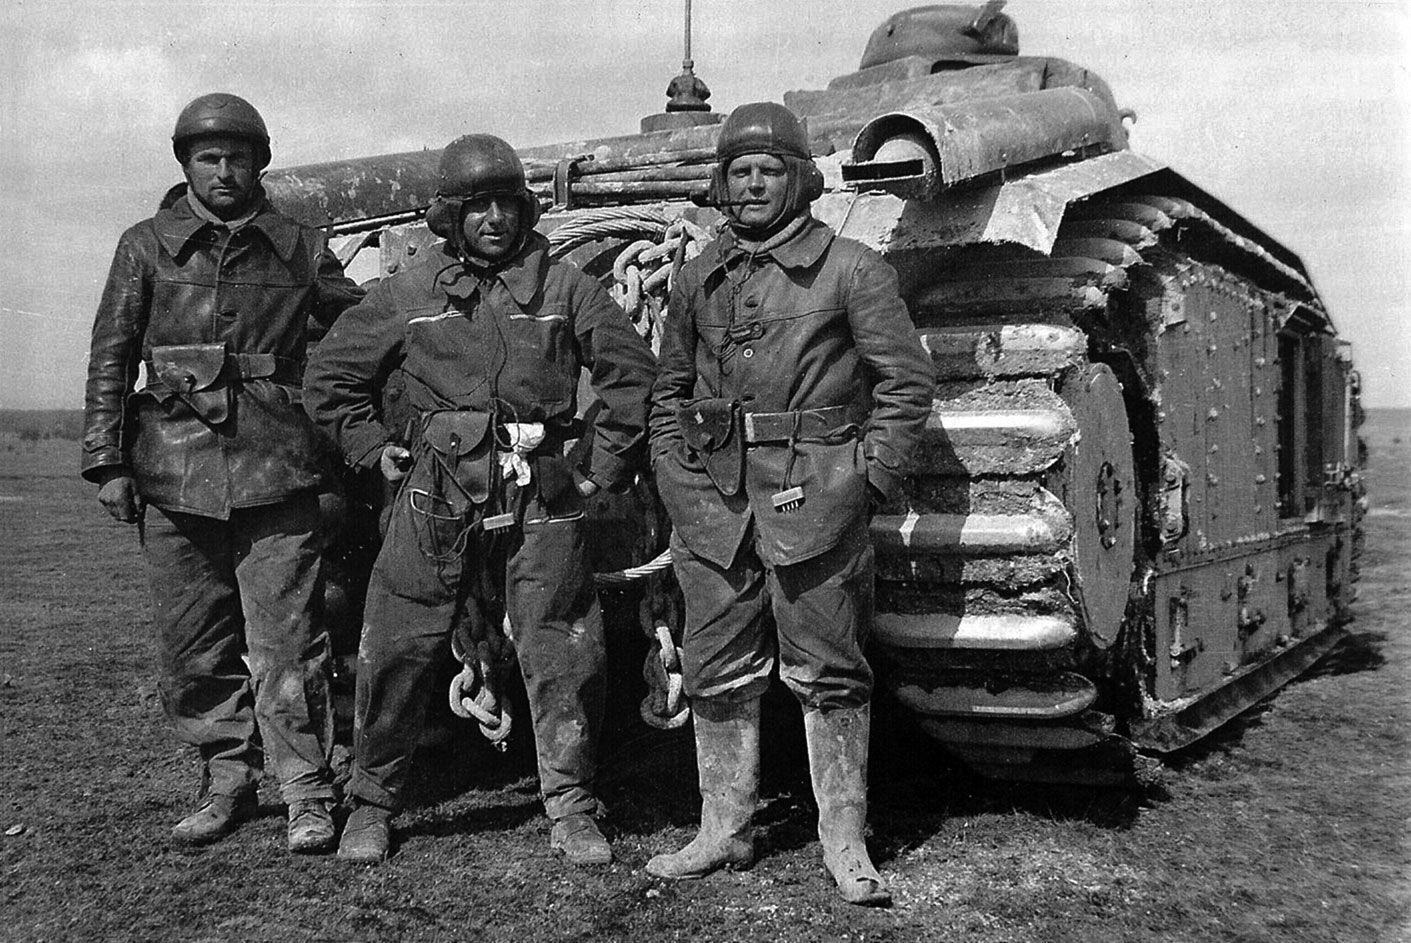 Staff sergeantJacques Dumas (with pipe, KIA June 15, 1940) poses with his crew in front of their Char B1 heavy tank, originally conceived as a self-propelled gun with a 75 mm howitzer in the hull. Among the most powerfull tanks of its day, the Char1 was very effective in battle with German armor in 1940 but slow speed and high fuel consumption made it ill-adapted to the war of movement then being fought. Some Char1s captured by the Germans were used as mechanized artillery.